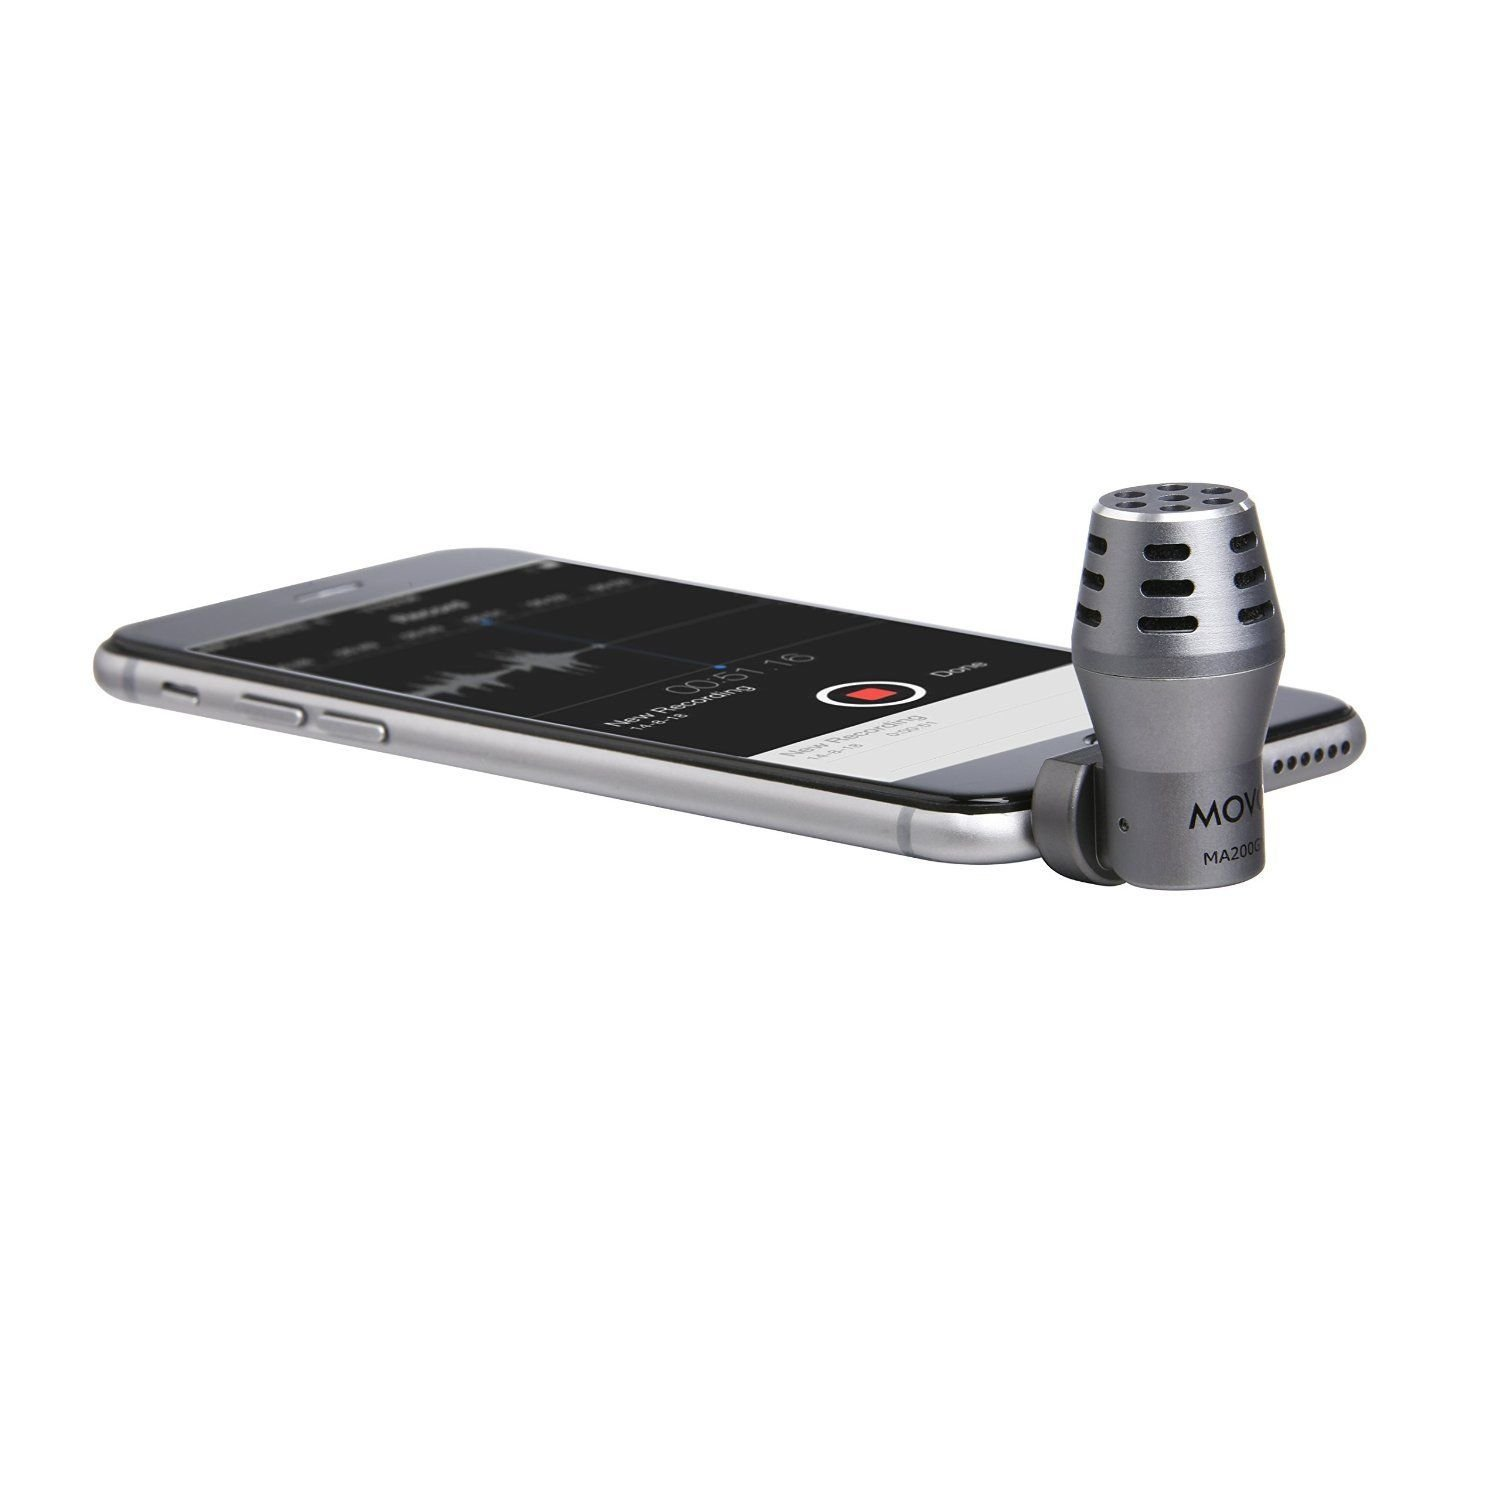 Movo MA200 Omni-Directional Calibrated TRRS Condenser Microphone for Apple iPhone iPad Rose Gold iPod Touch